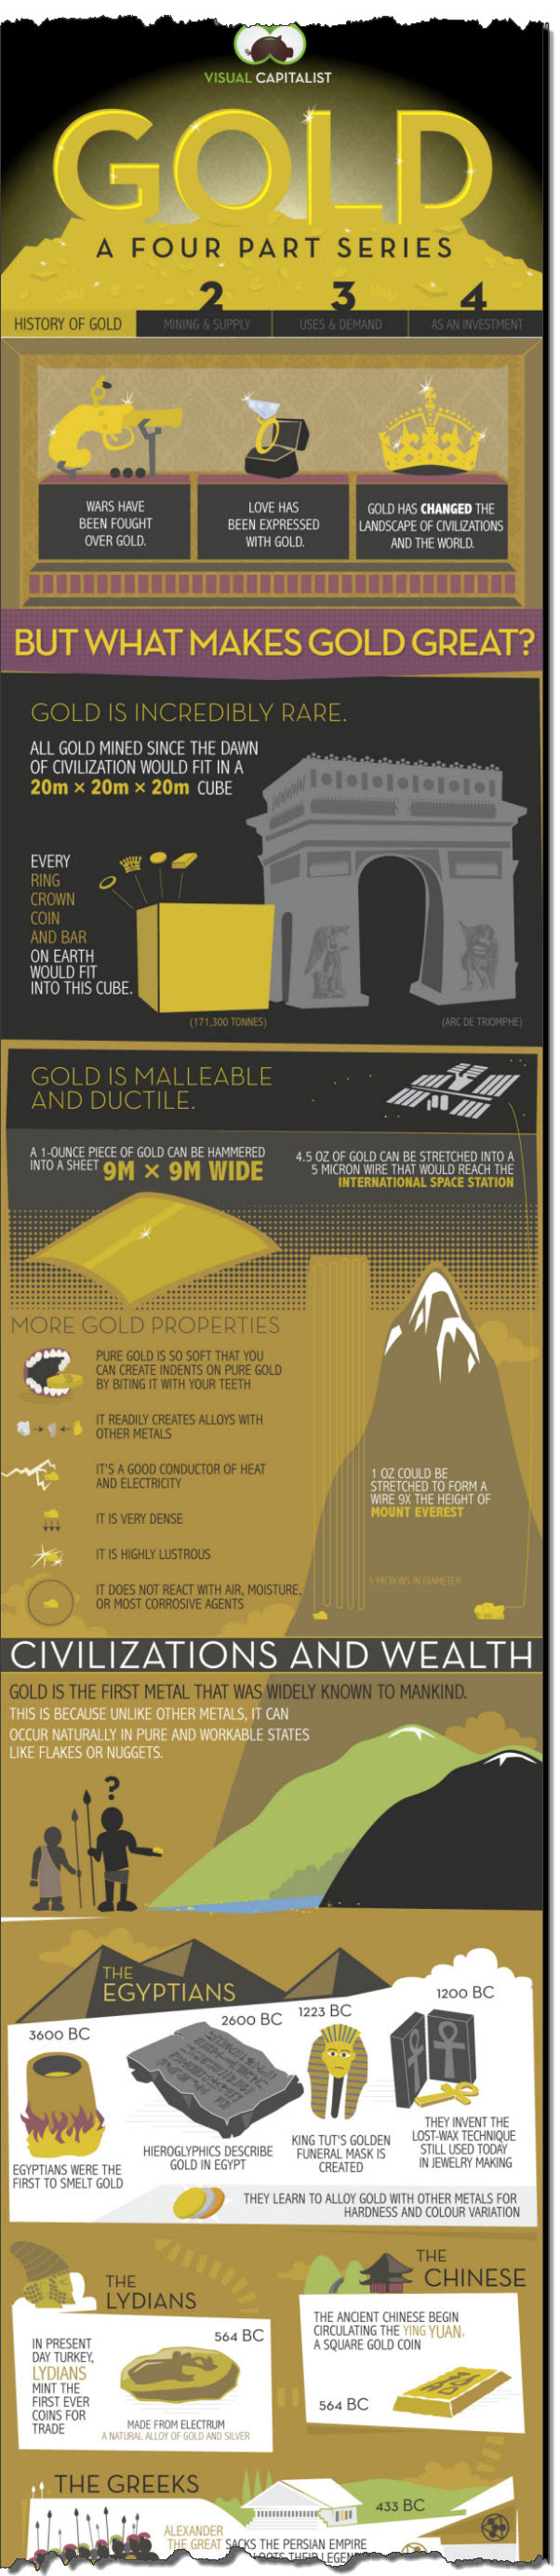 gold-history-infographic1--